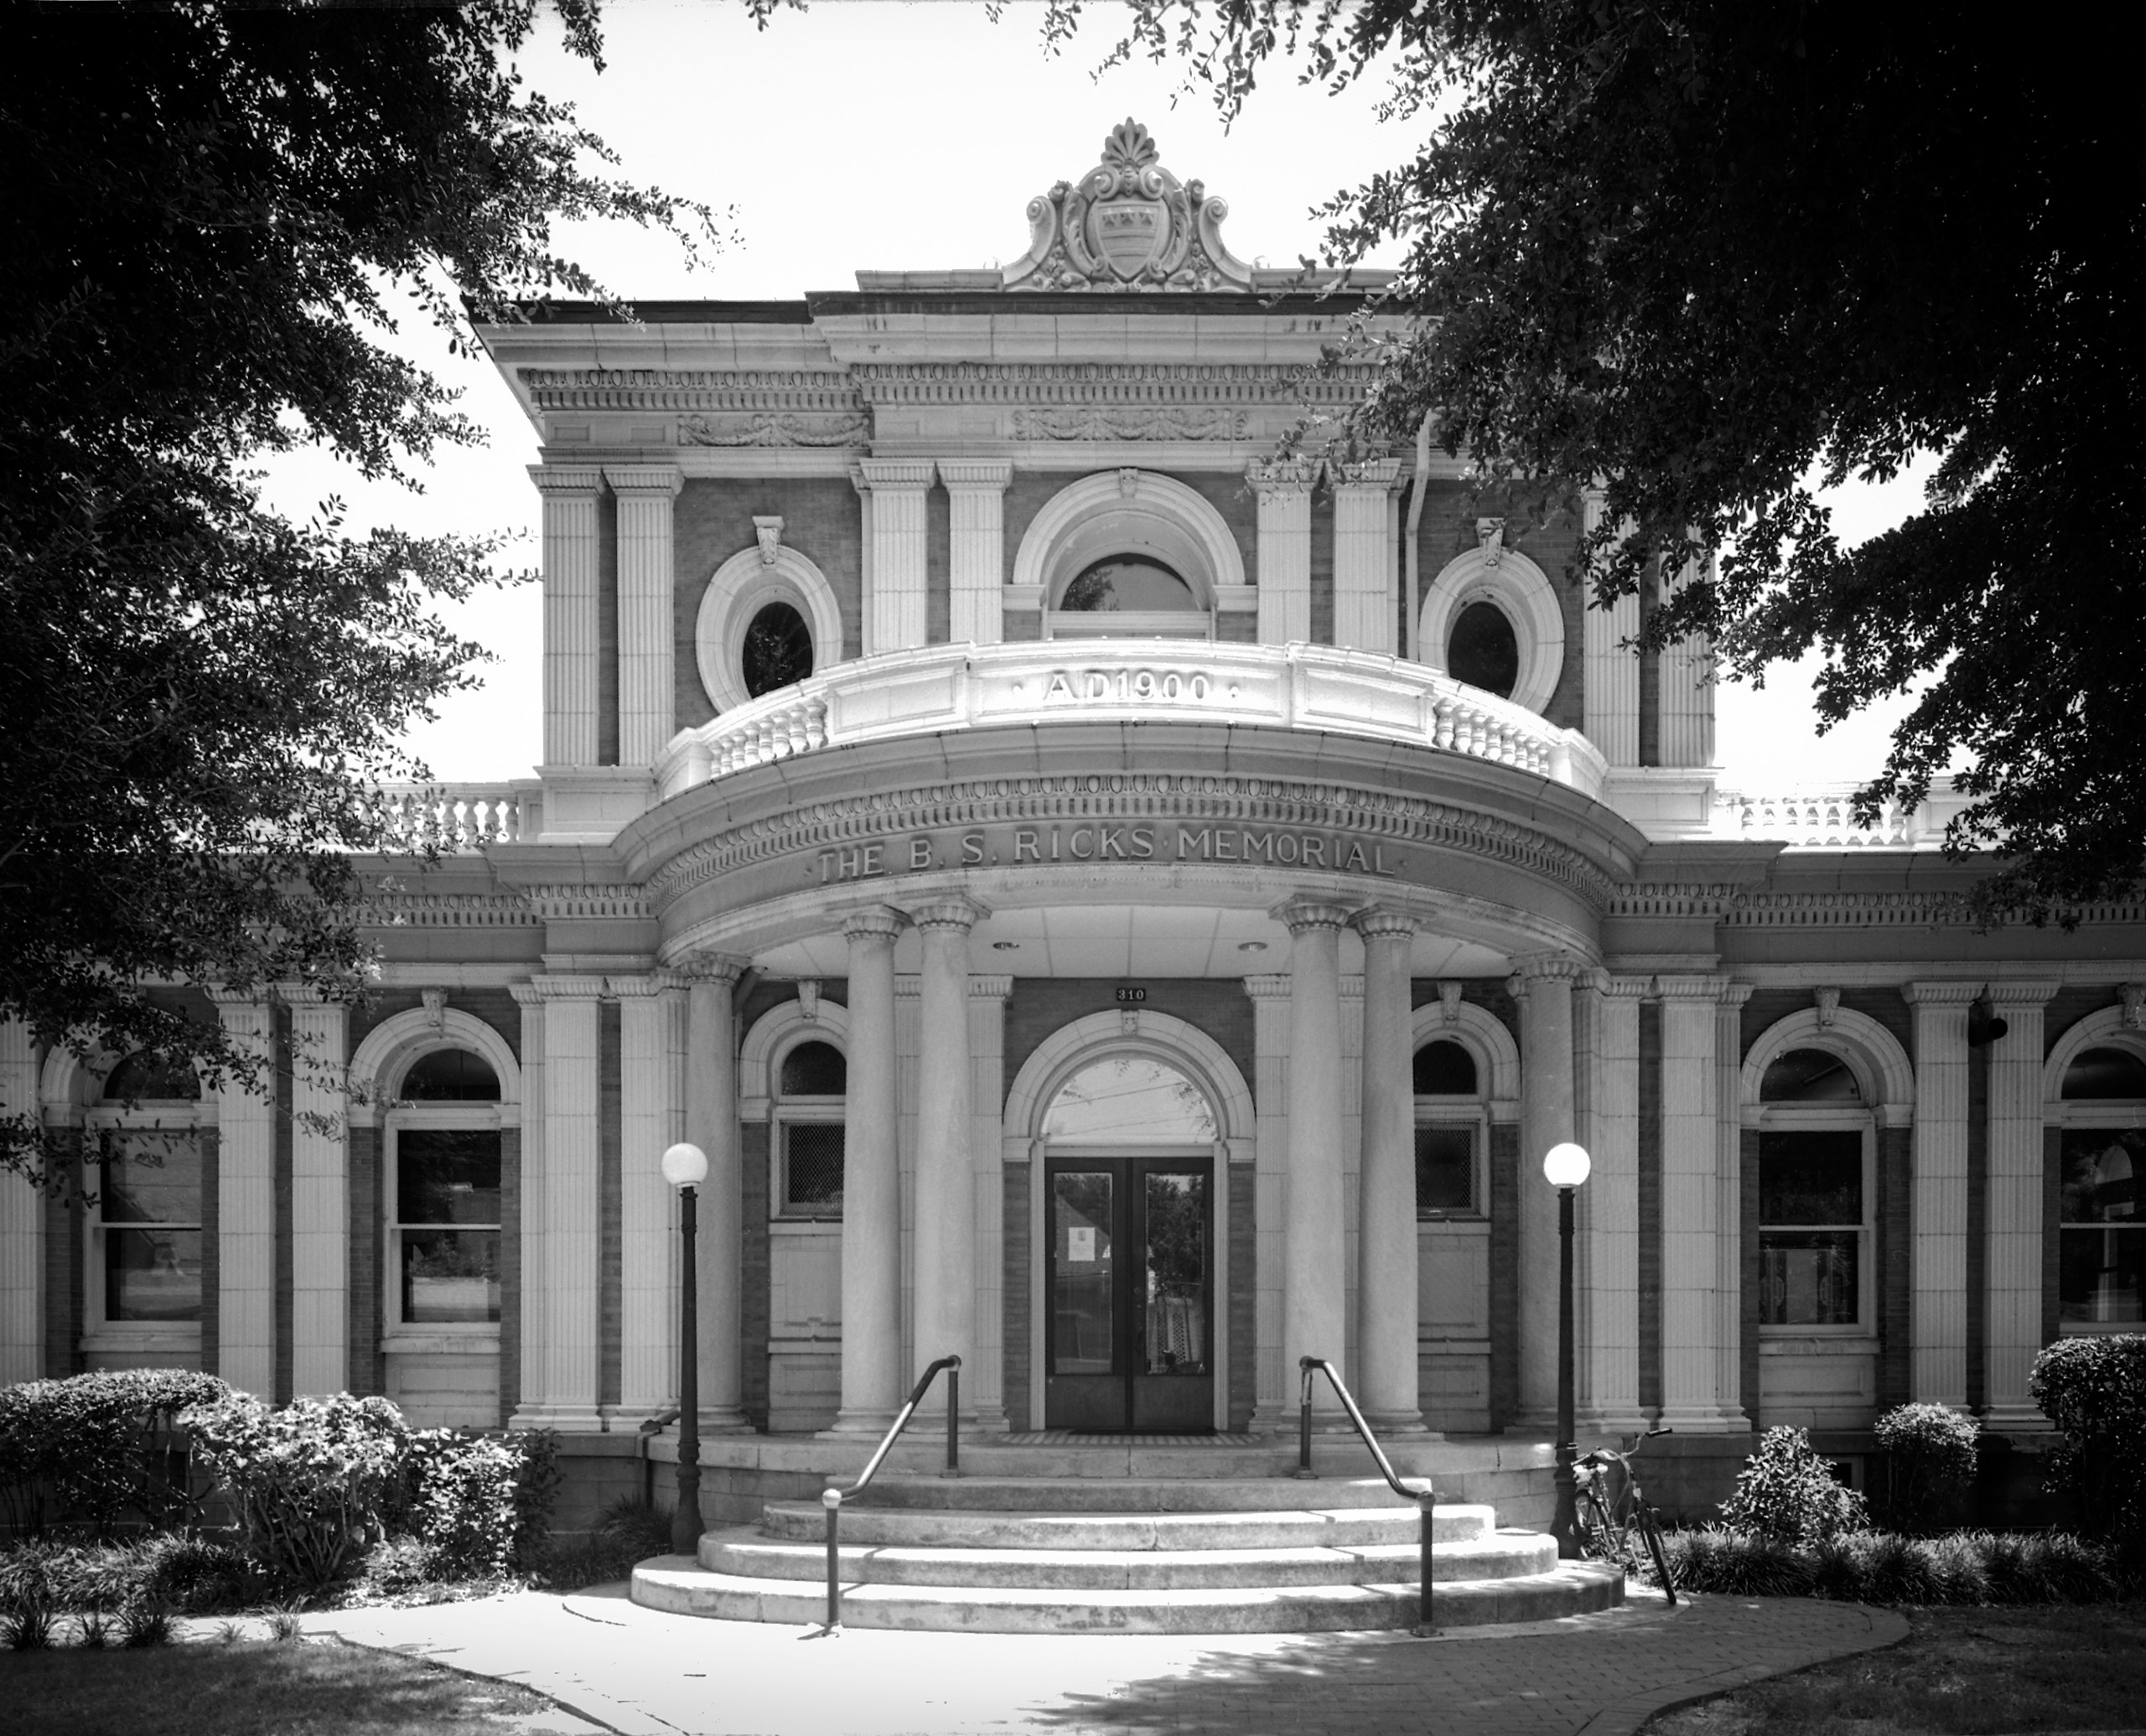 B.S. Ricks Memorial Library, Yazoo City, MS 2011. Founded in 1838, this library was dedicated a Literary Landmark in recognition of Willie Morris (1934-1999), a journalist, editor, author, and renowned Mississippian.